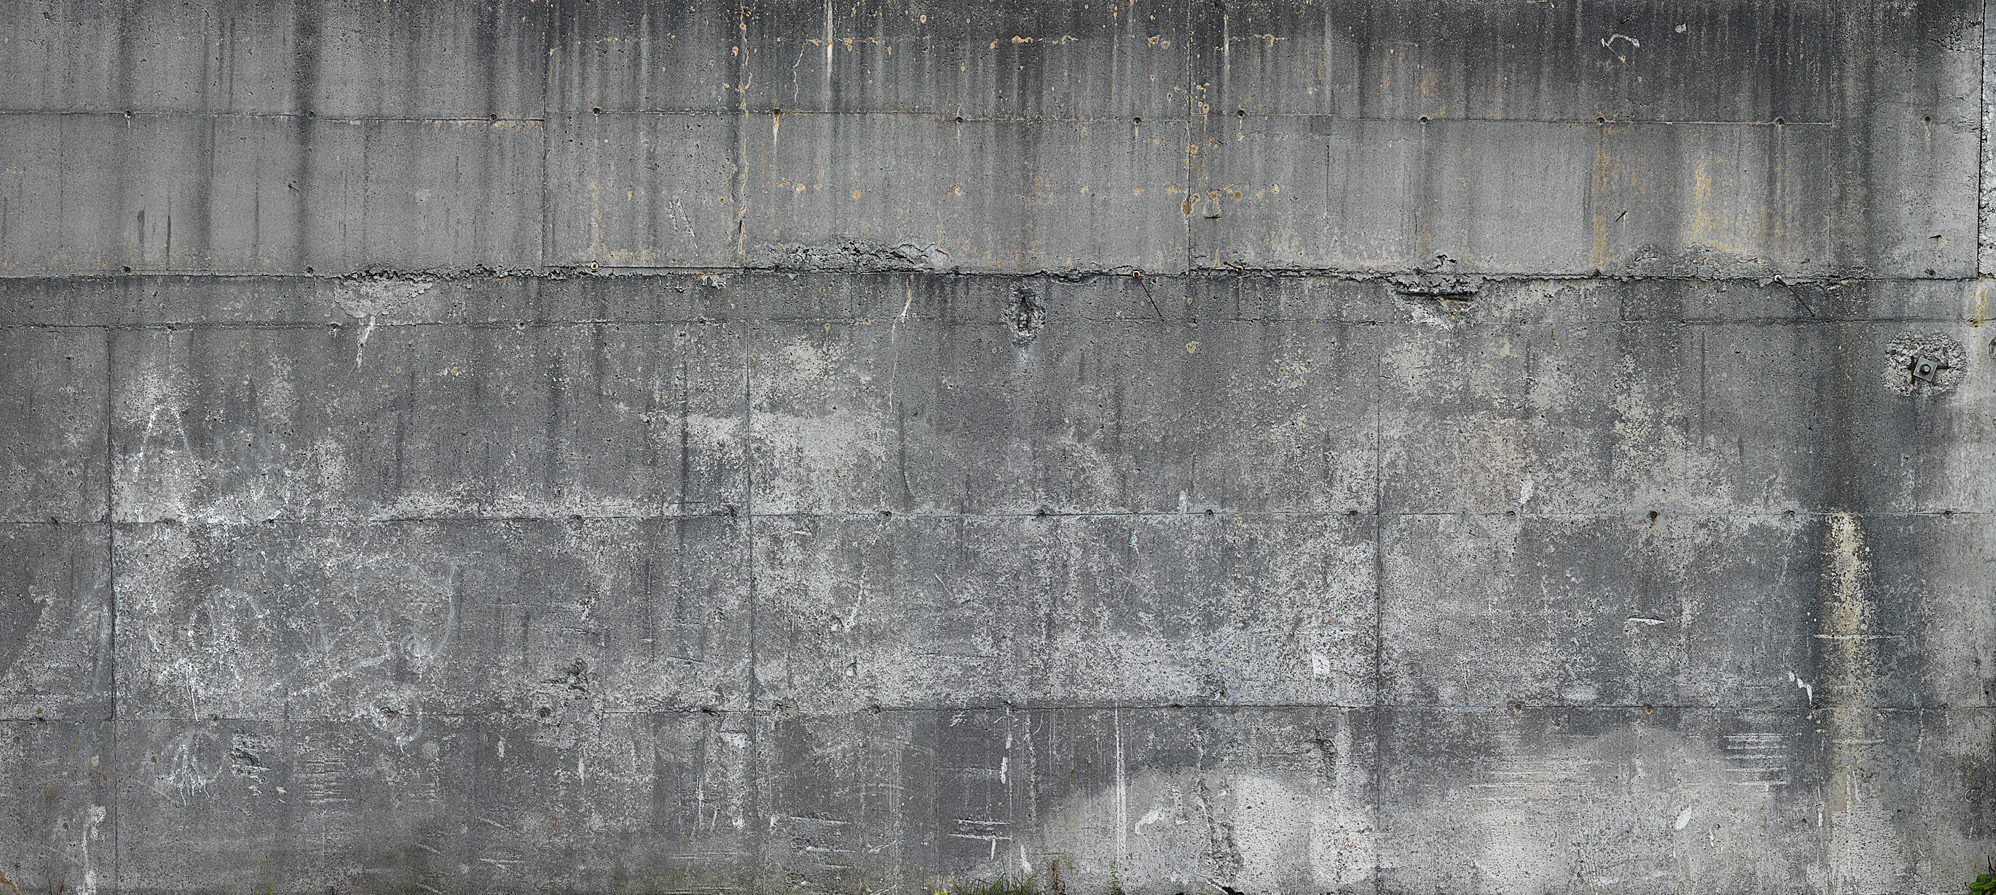 Jail Cell Wallpaper Concrete wallpaper for your 1996x895